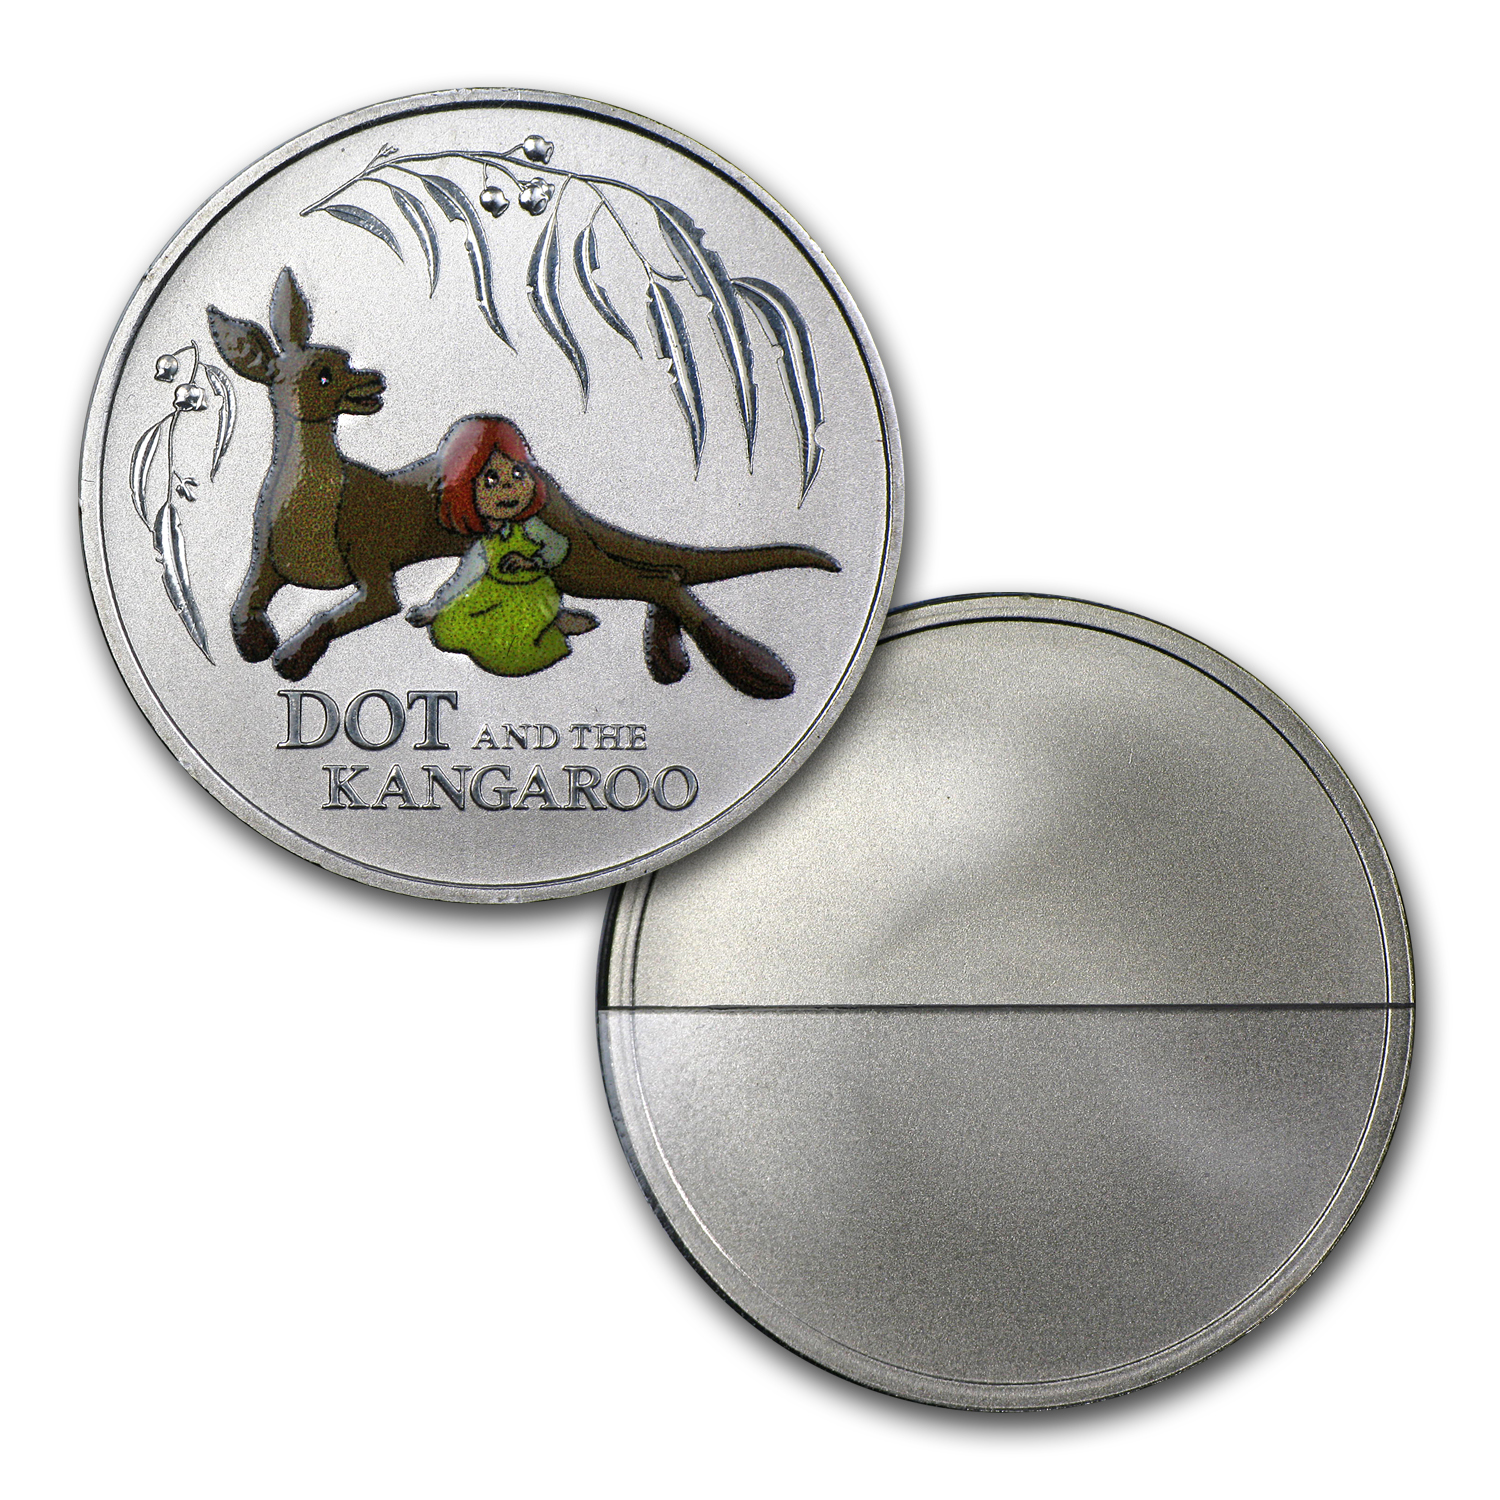 2012 Australia 6-Coin Dot & the Kangaroo Baby Set BU